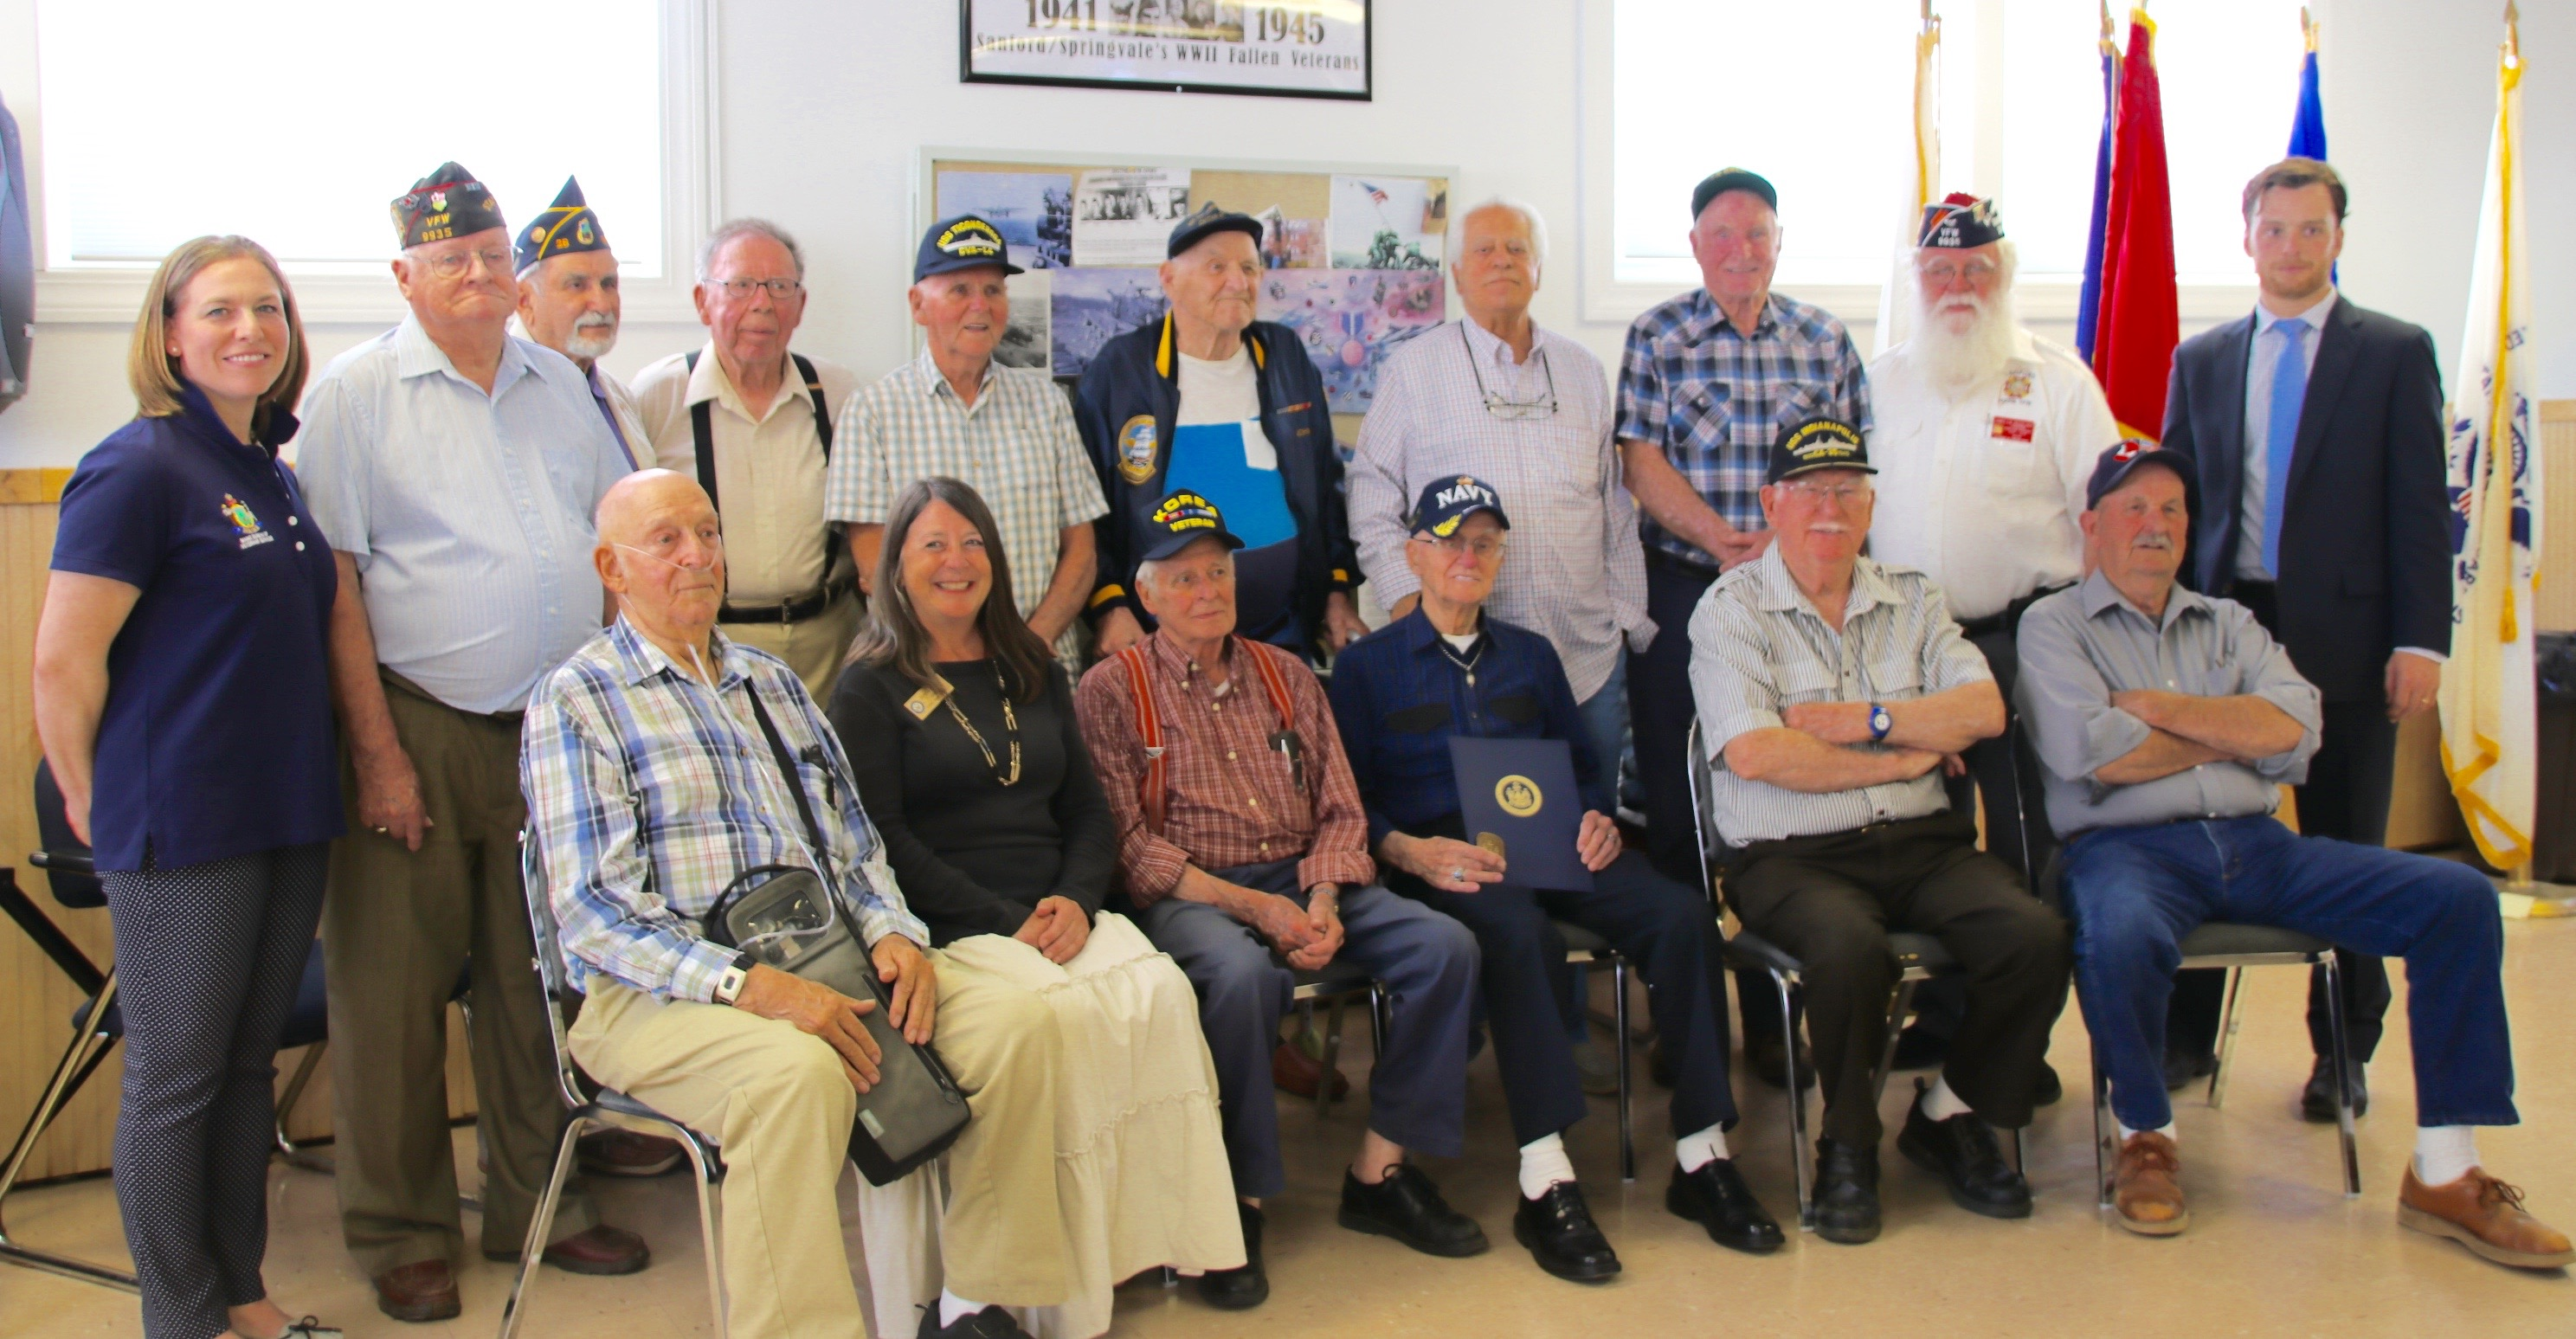 A number of Sanford and area World War Ii and Korean War veterans, congressional aides, organizers and representatives from the Maine Bureau of Veterans Services paused for a photo at the VFW hall in Sanford Wednesday after the veterans received commemorative coins and certificates from the state of Maine, thanking them for their service. TAMMY WELLS/Journal Tribune